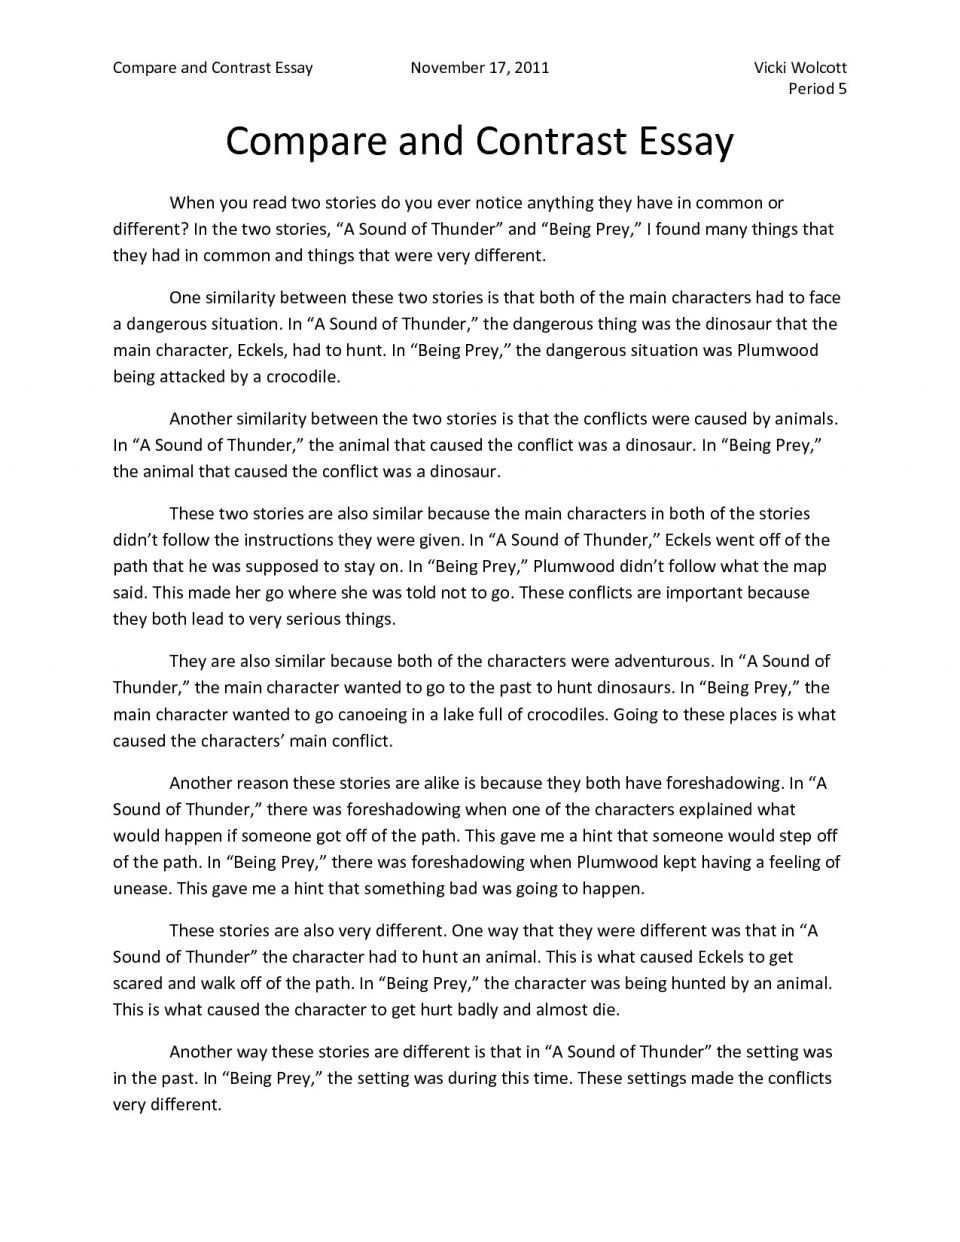 006 Comparing And Contrasting Essay Example Satire Examples Of Comparison Contrast Essays Com How To Write Outstanding A Compare On Two Poems An Introduction Conclusion For Middle School 960